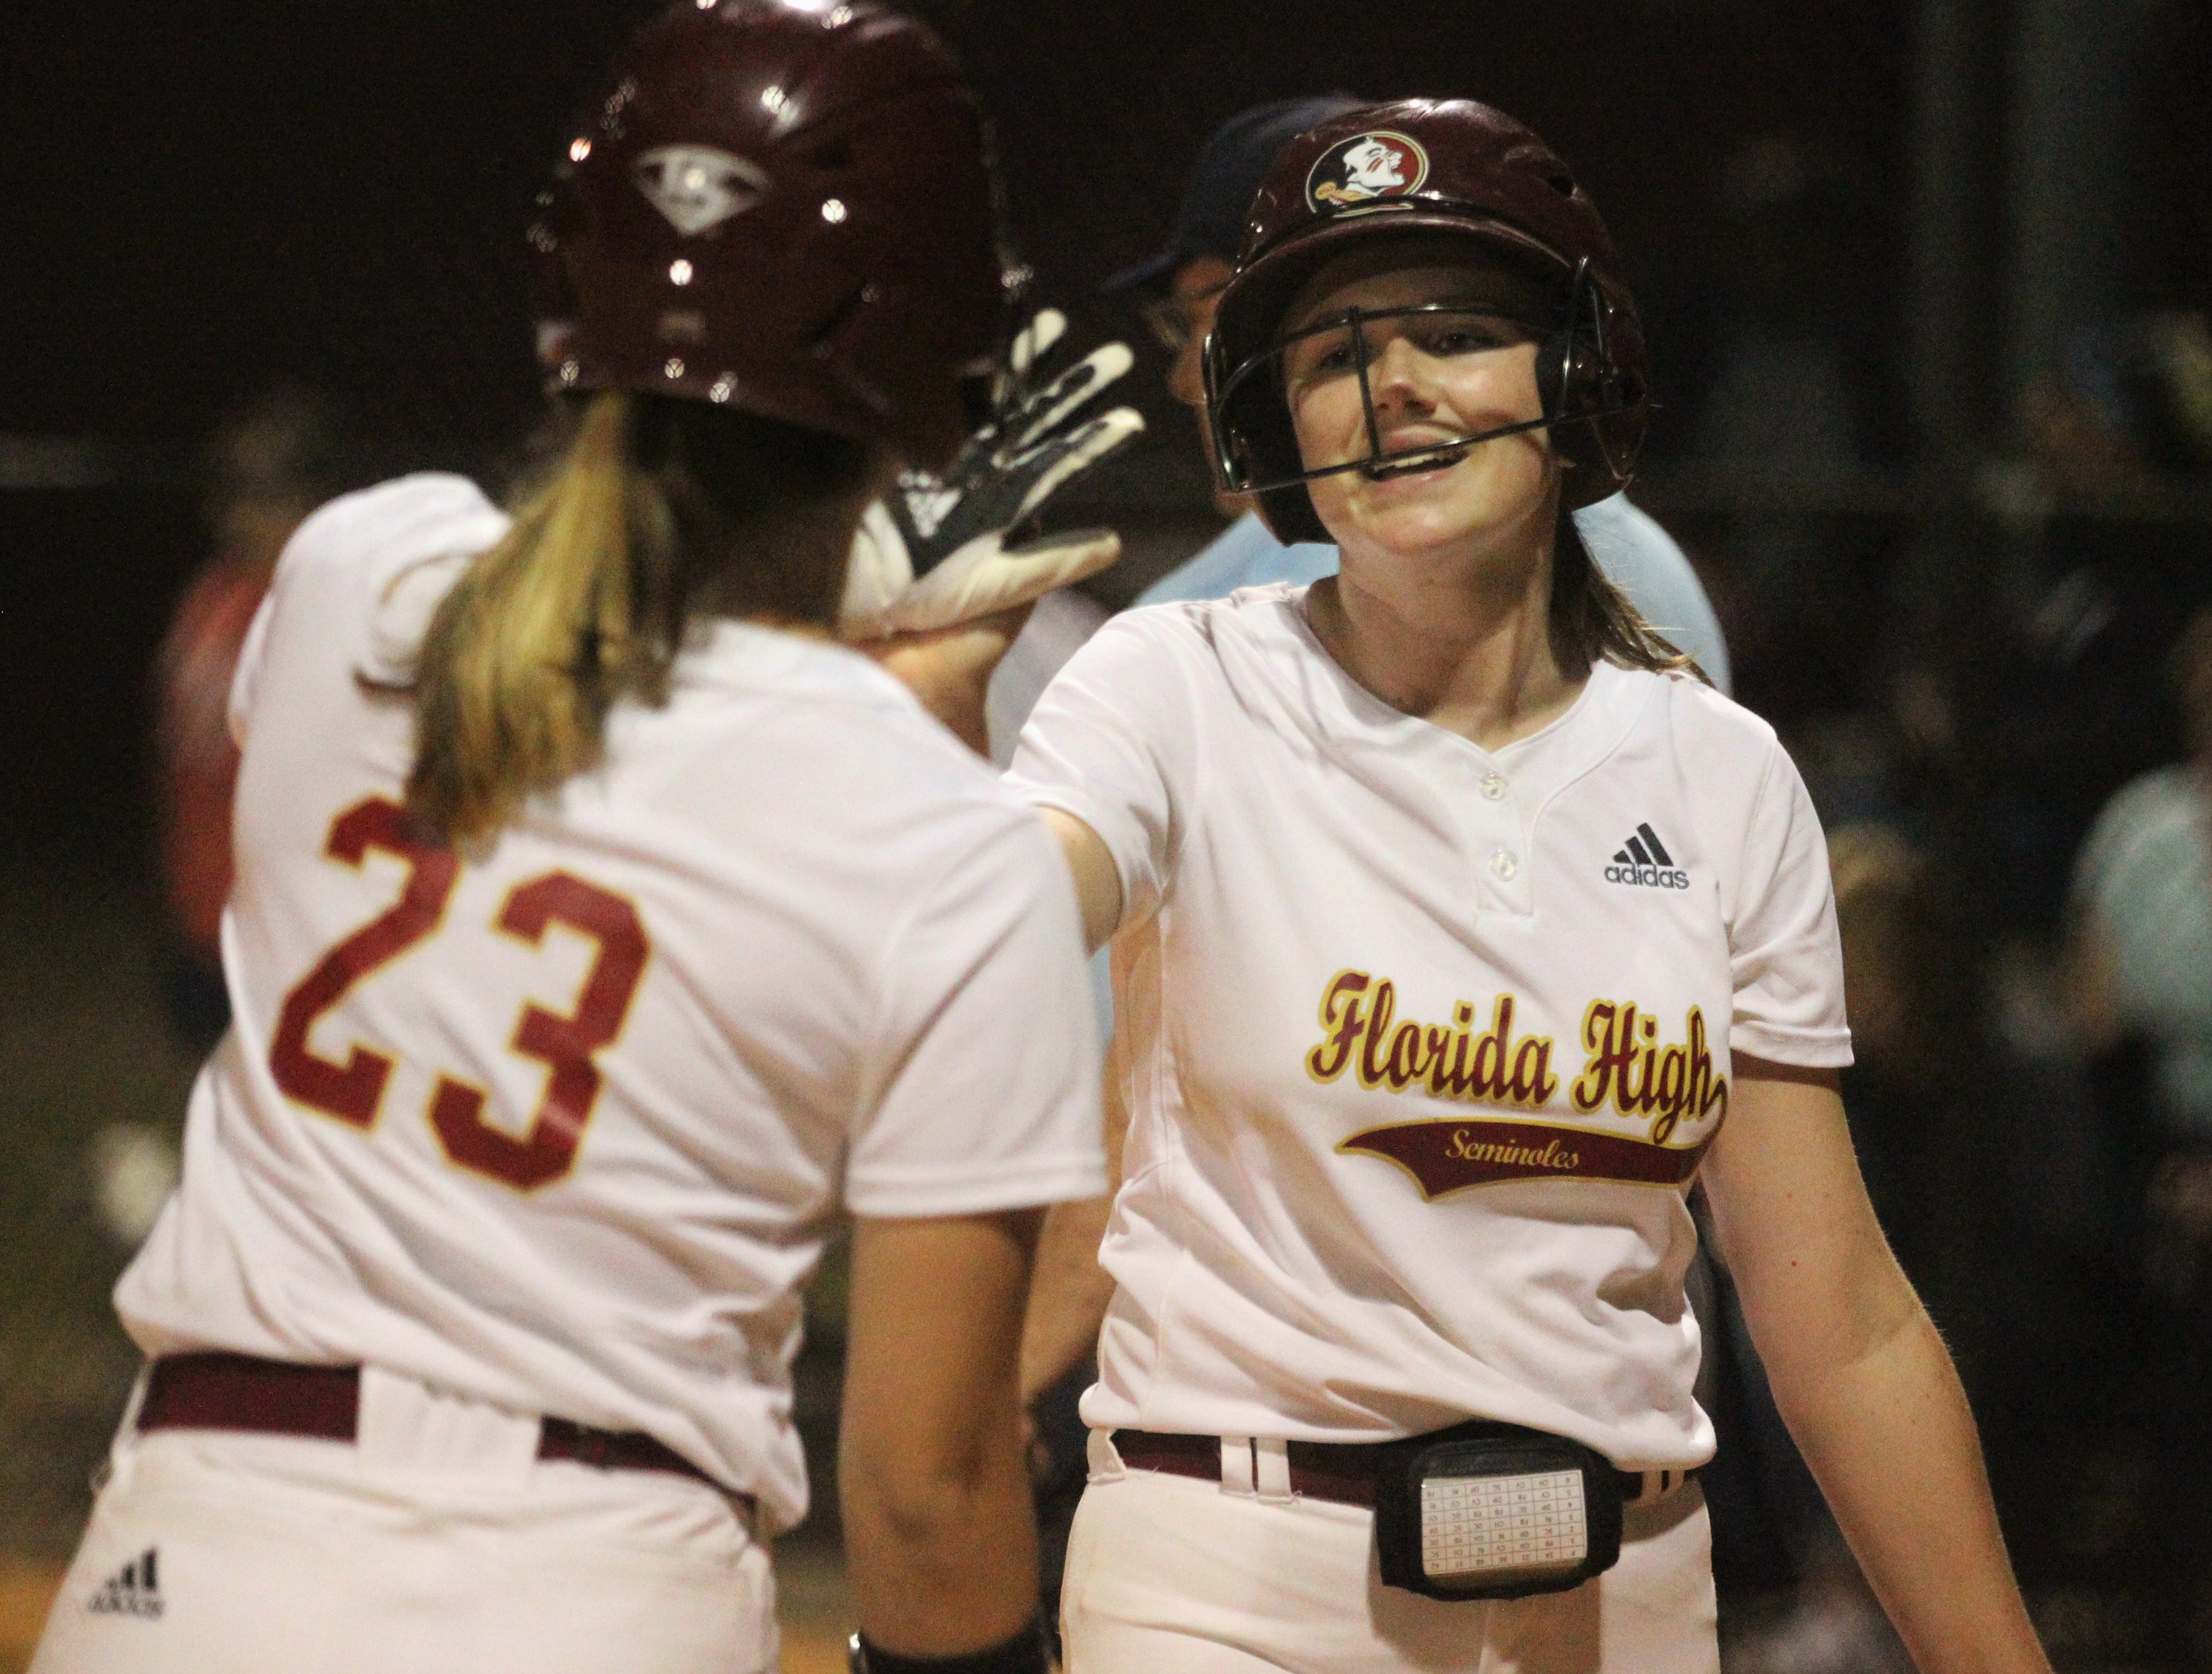 Florida High sophomore Addisan Langston is congratulated after scoring a run as Lincoln's softball team beat Florida High 7-3 on Thursday, April 4, 2019.